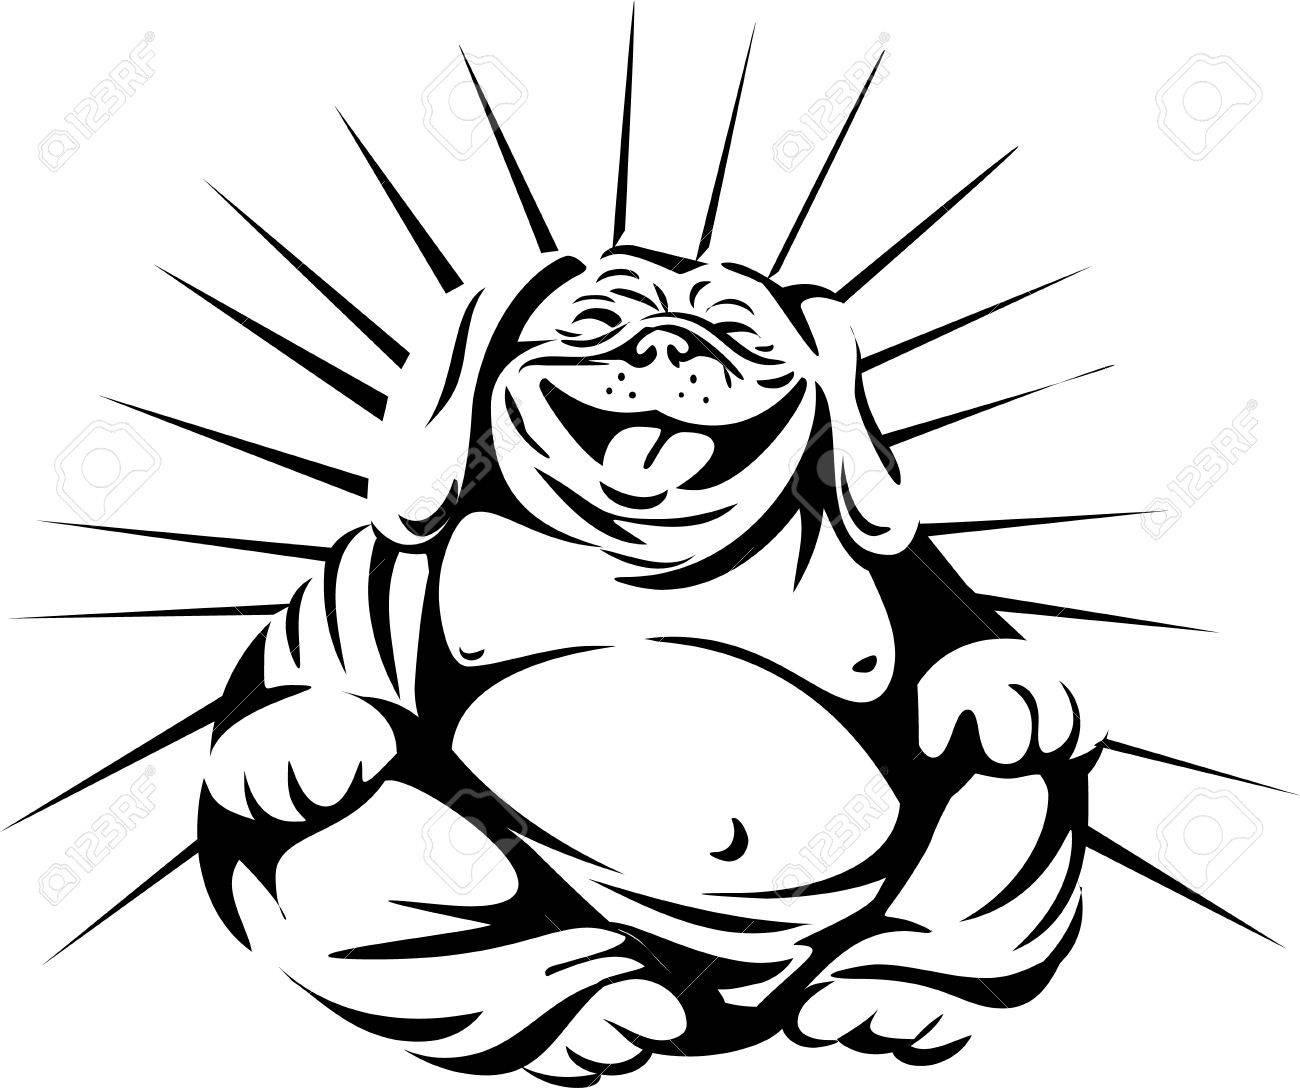 Black and white illustration of a bulldog laughing buddha sitting viewed from front set on isolated white background done in retro style. - 68286578